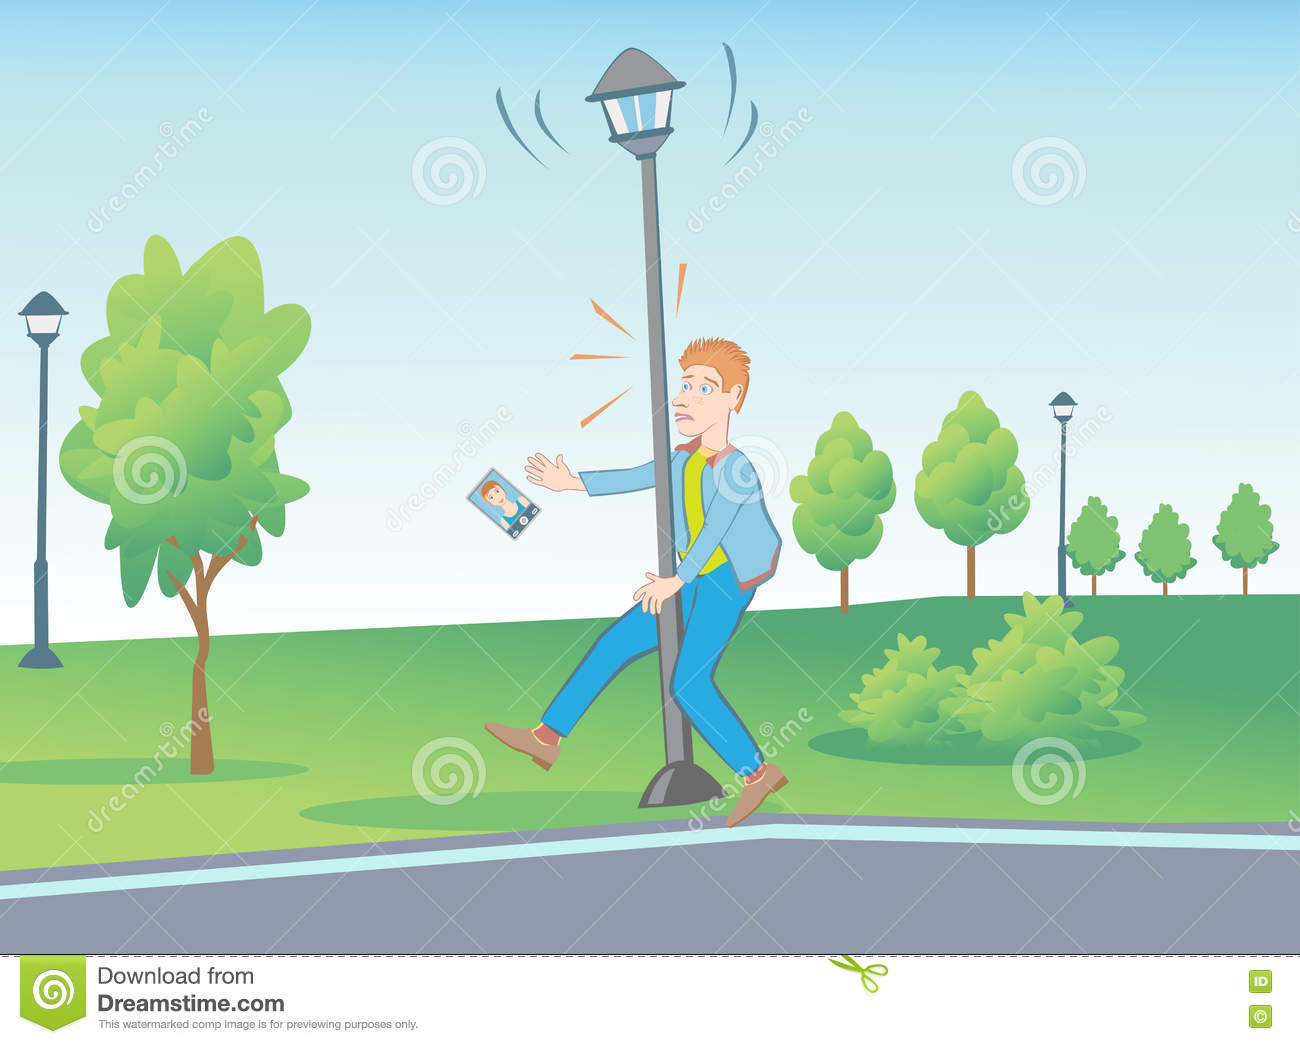 Unusual situations in the park with street lamp.